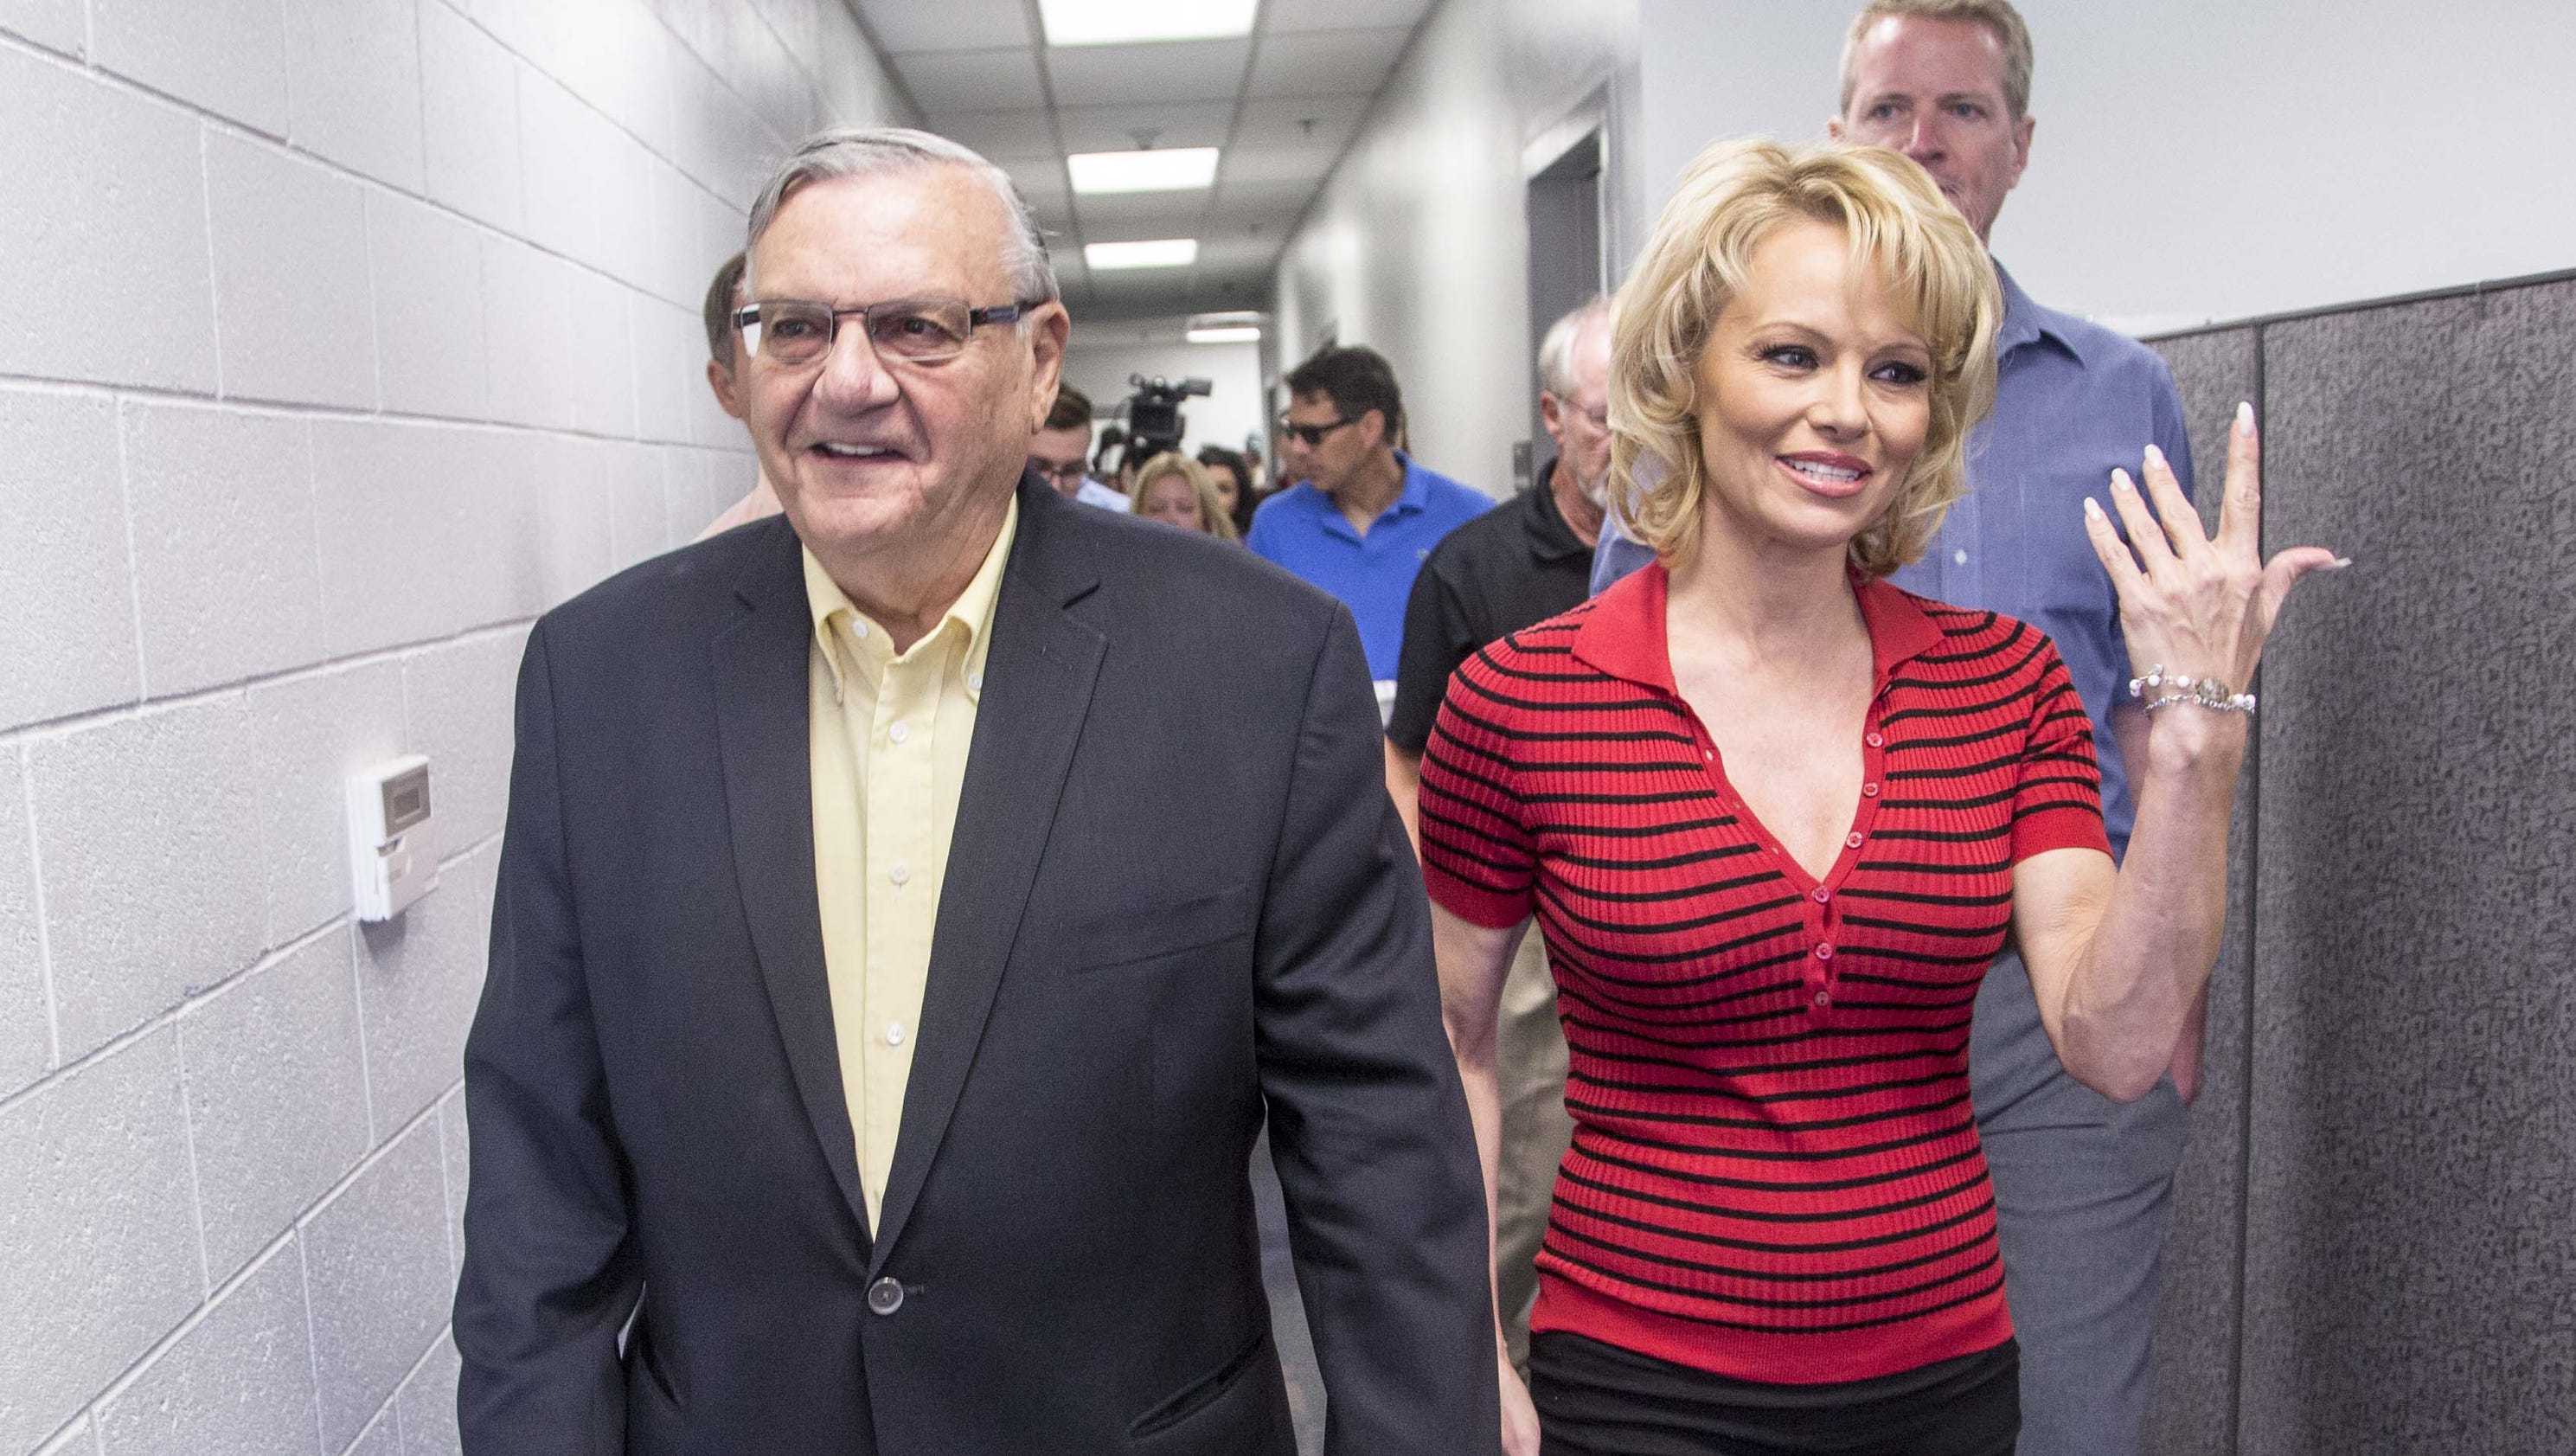 Pamela anderson visits tent city touts vegetarianism for Today s interiors phoenix